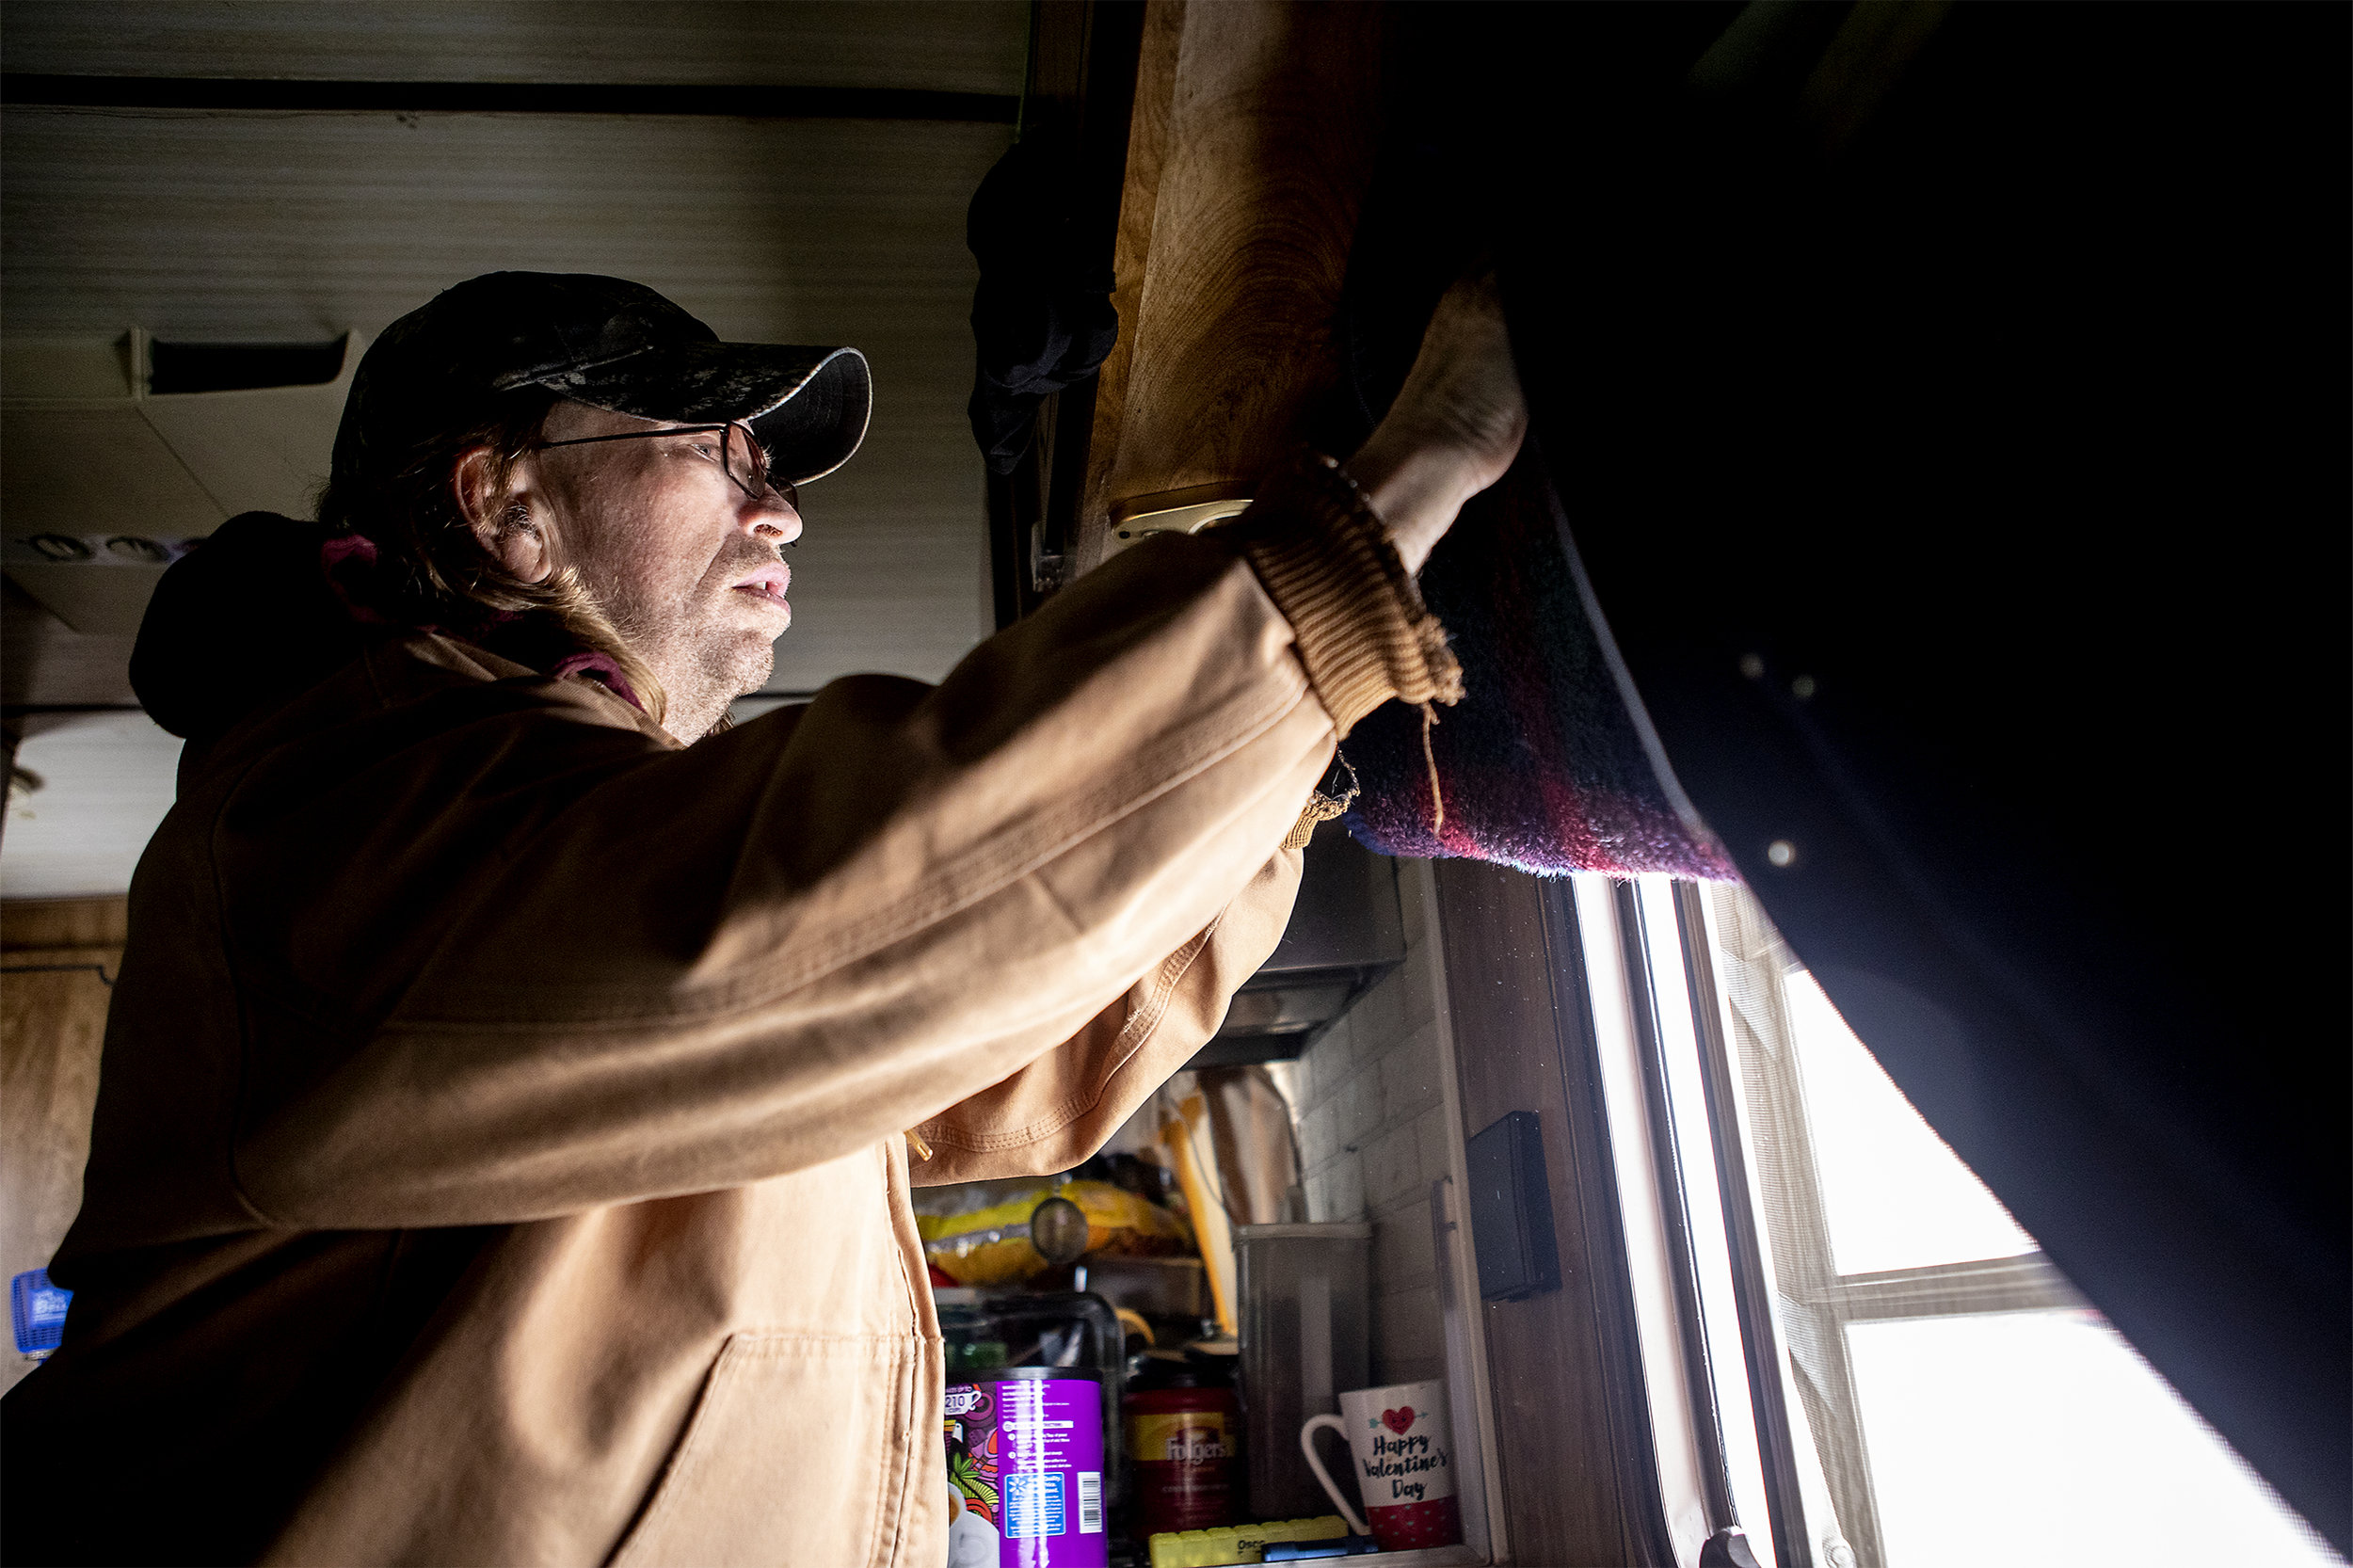 Jeff lifts the curtains of their home. During the recent cold that hit Gillette they ended up with ice on their windows and inch thick. The family relies one a heater and propane tanks to keep them and the mobile home warm during the winter.